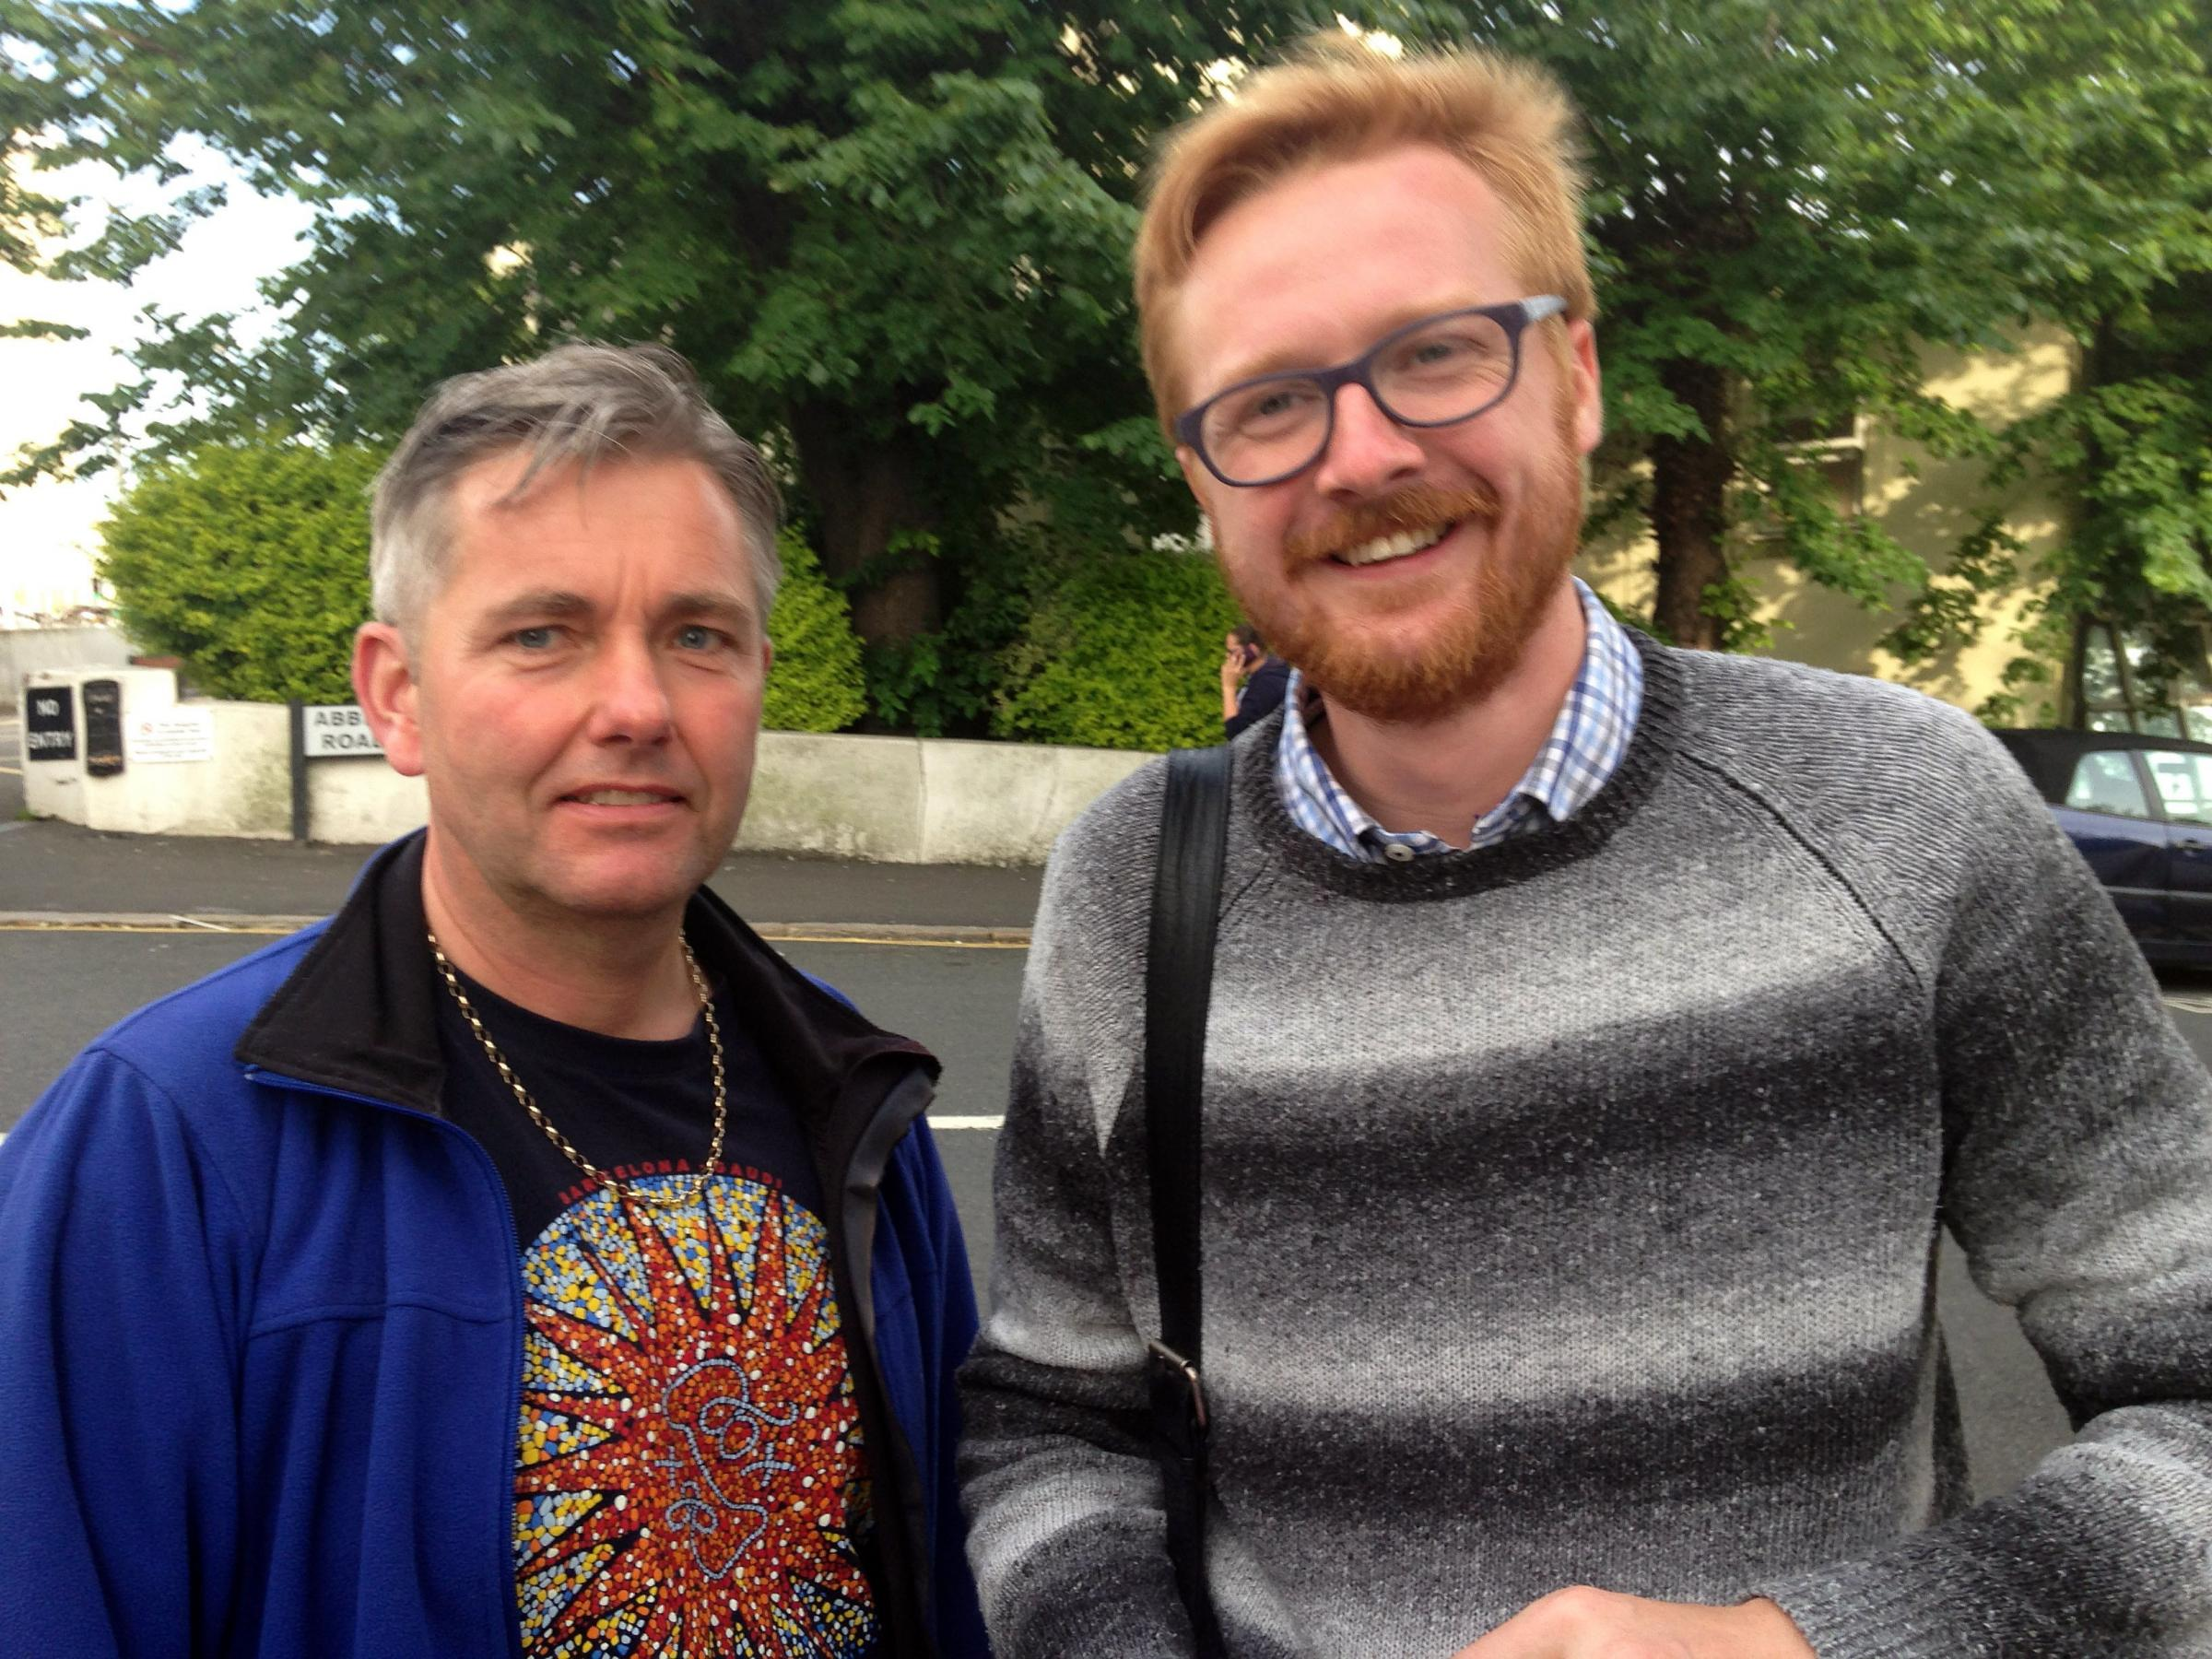 Chairman-elect of the Brighton Hove and District Labour Party Mark Sandell, 50, (L), with former Chair and current Brighton and Hove City Councillor Lloyd Russell-Moyle. ..Picture: Joel Adams..